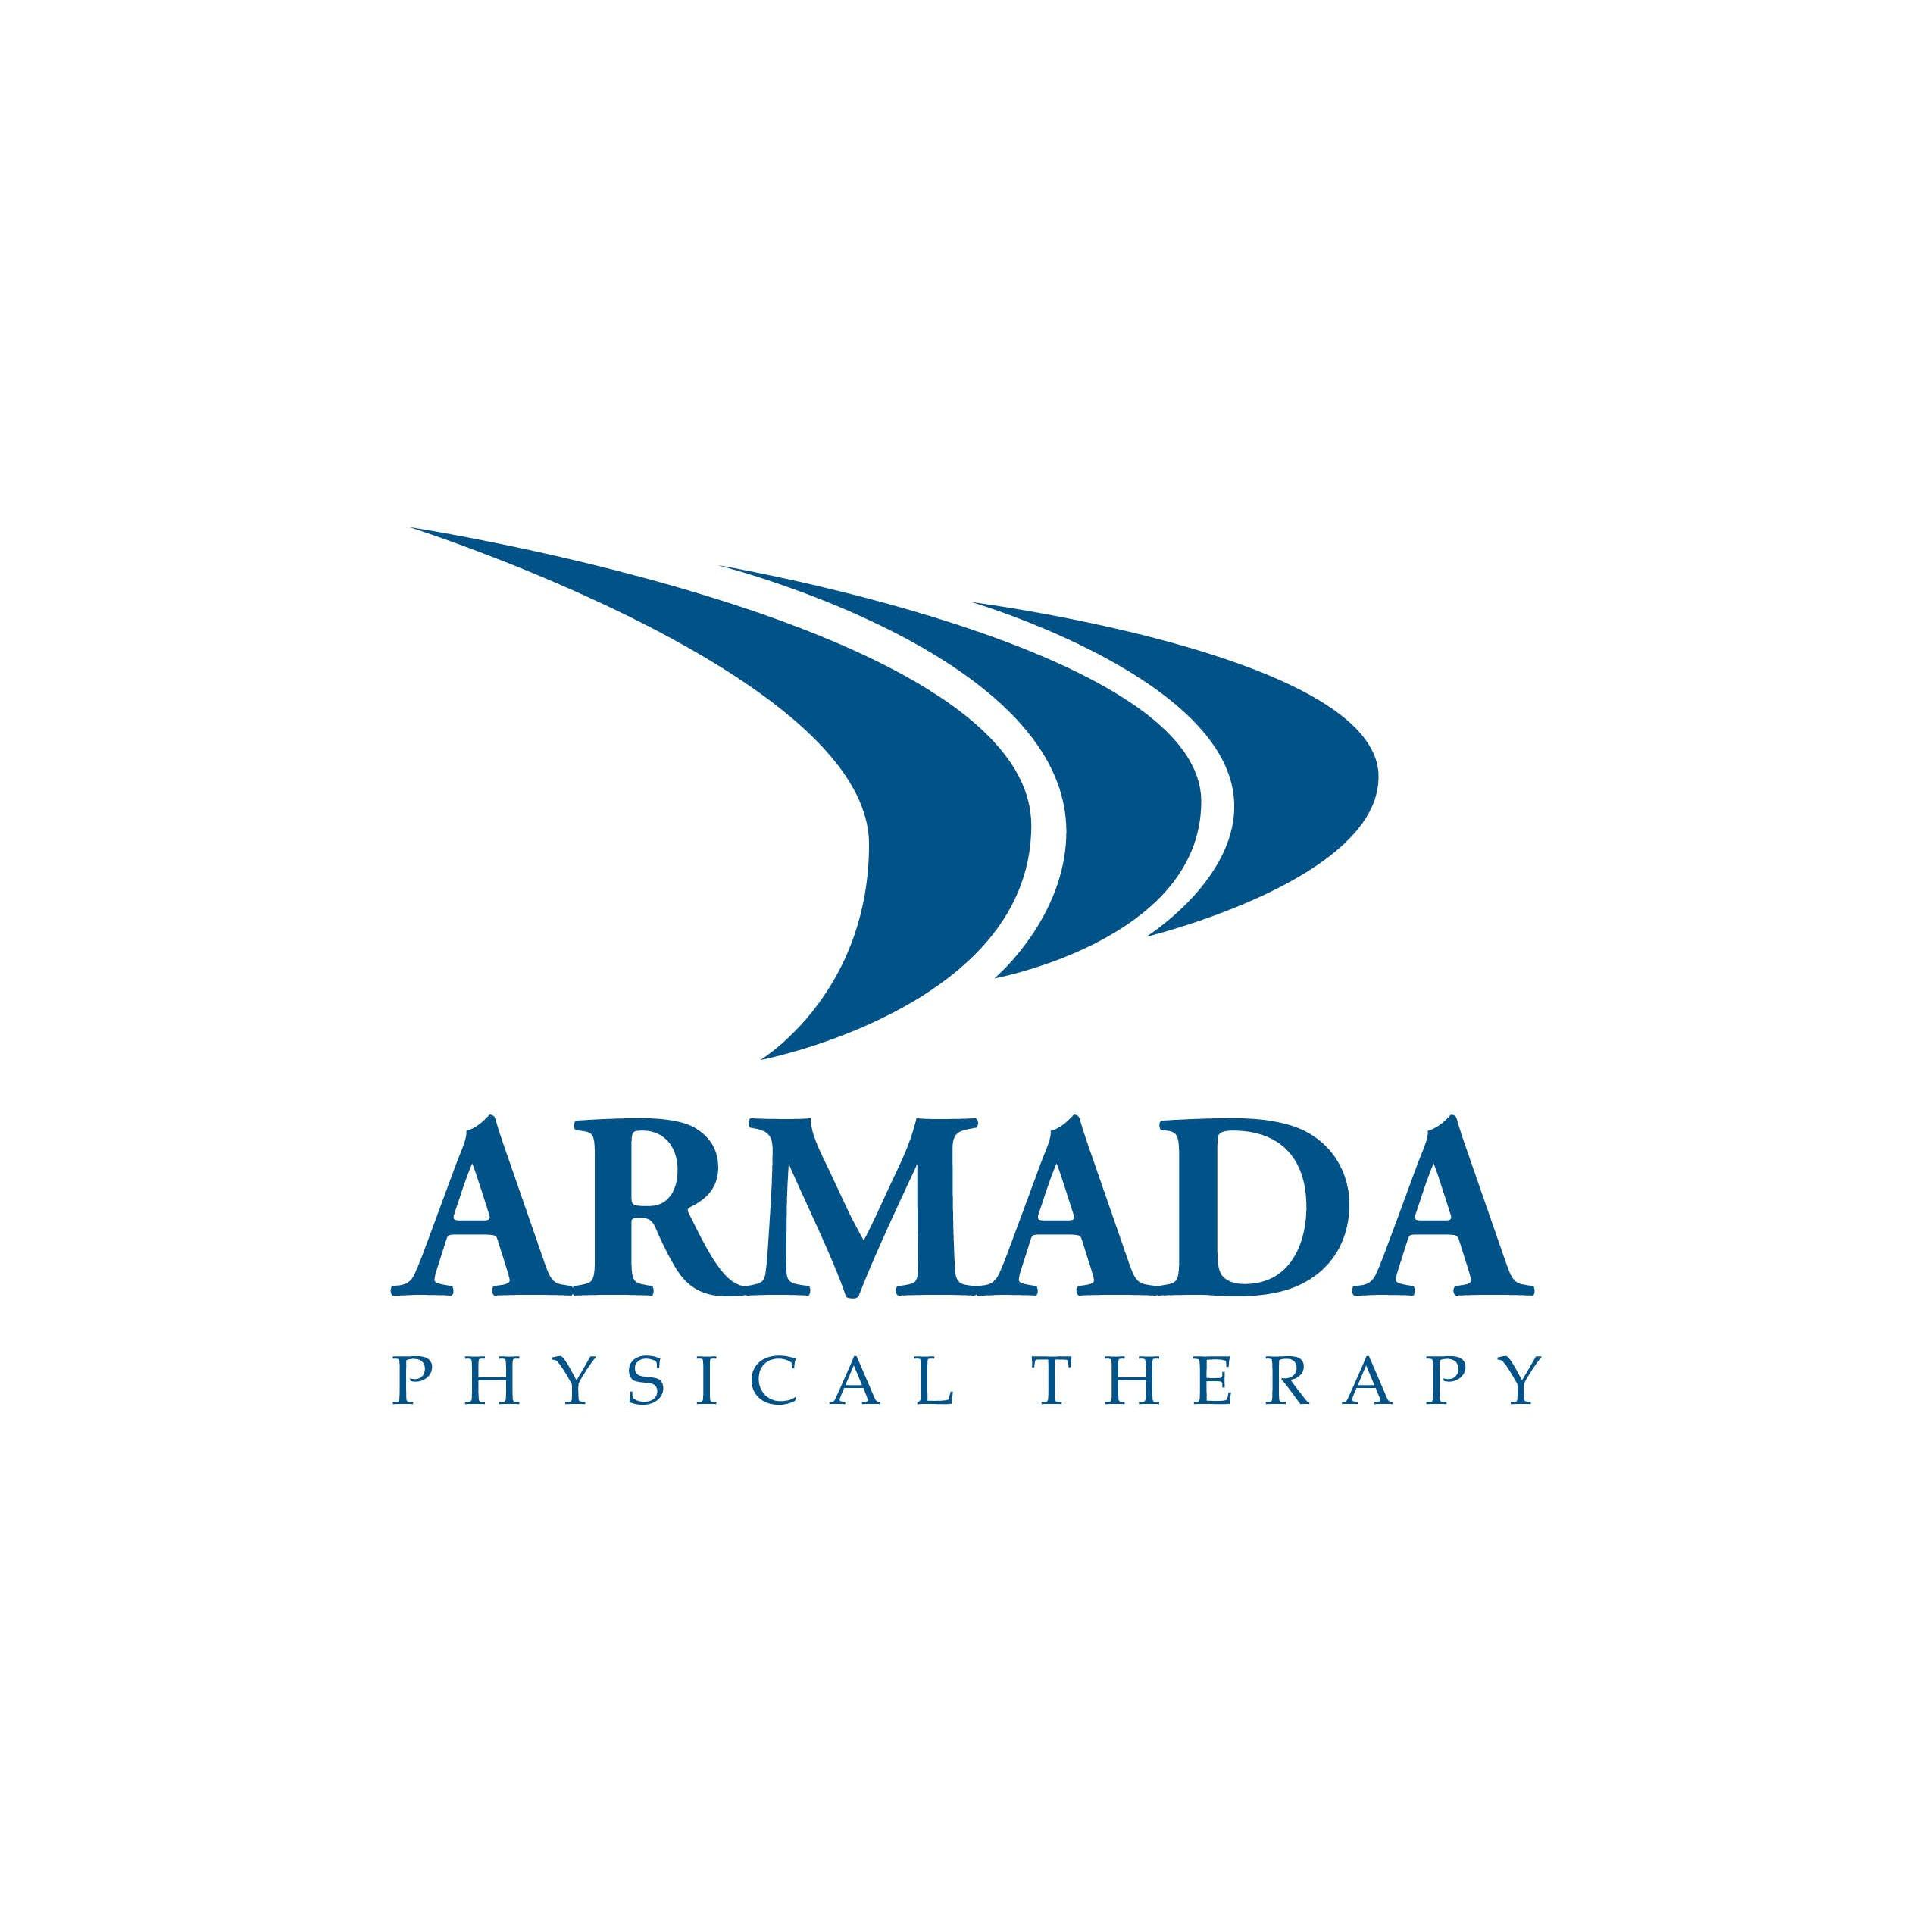 Armada Physical Therapy image 2